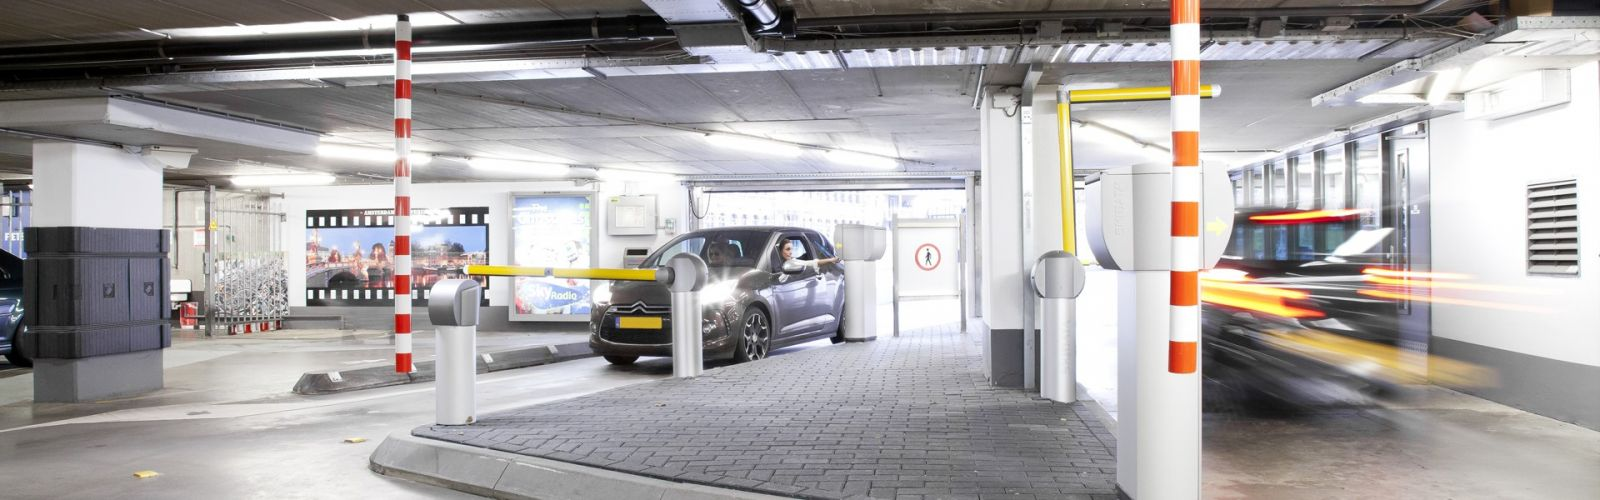 P1 exploiteert parkeergarage Waterlooplein in Amsterdam